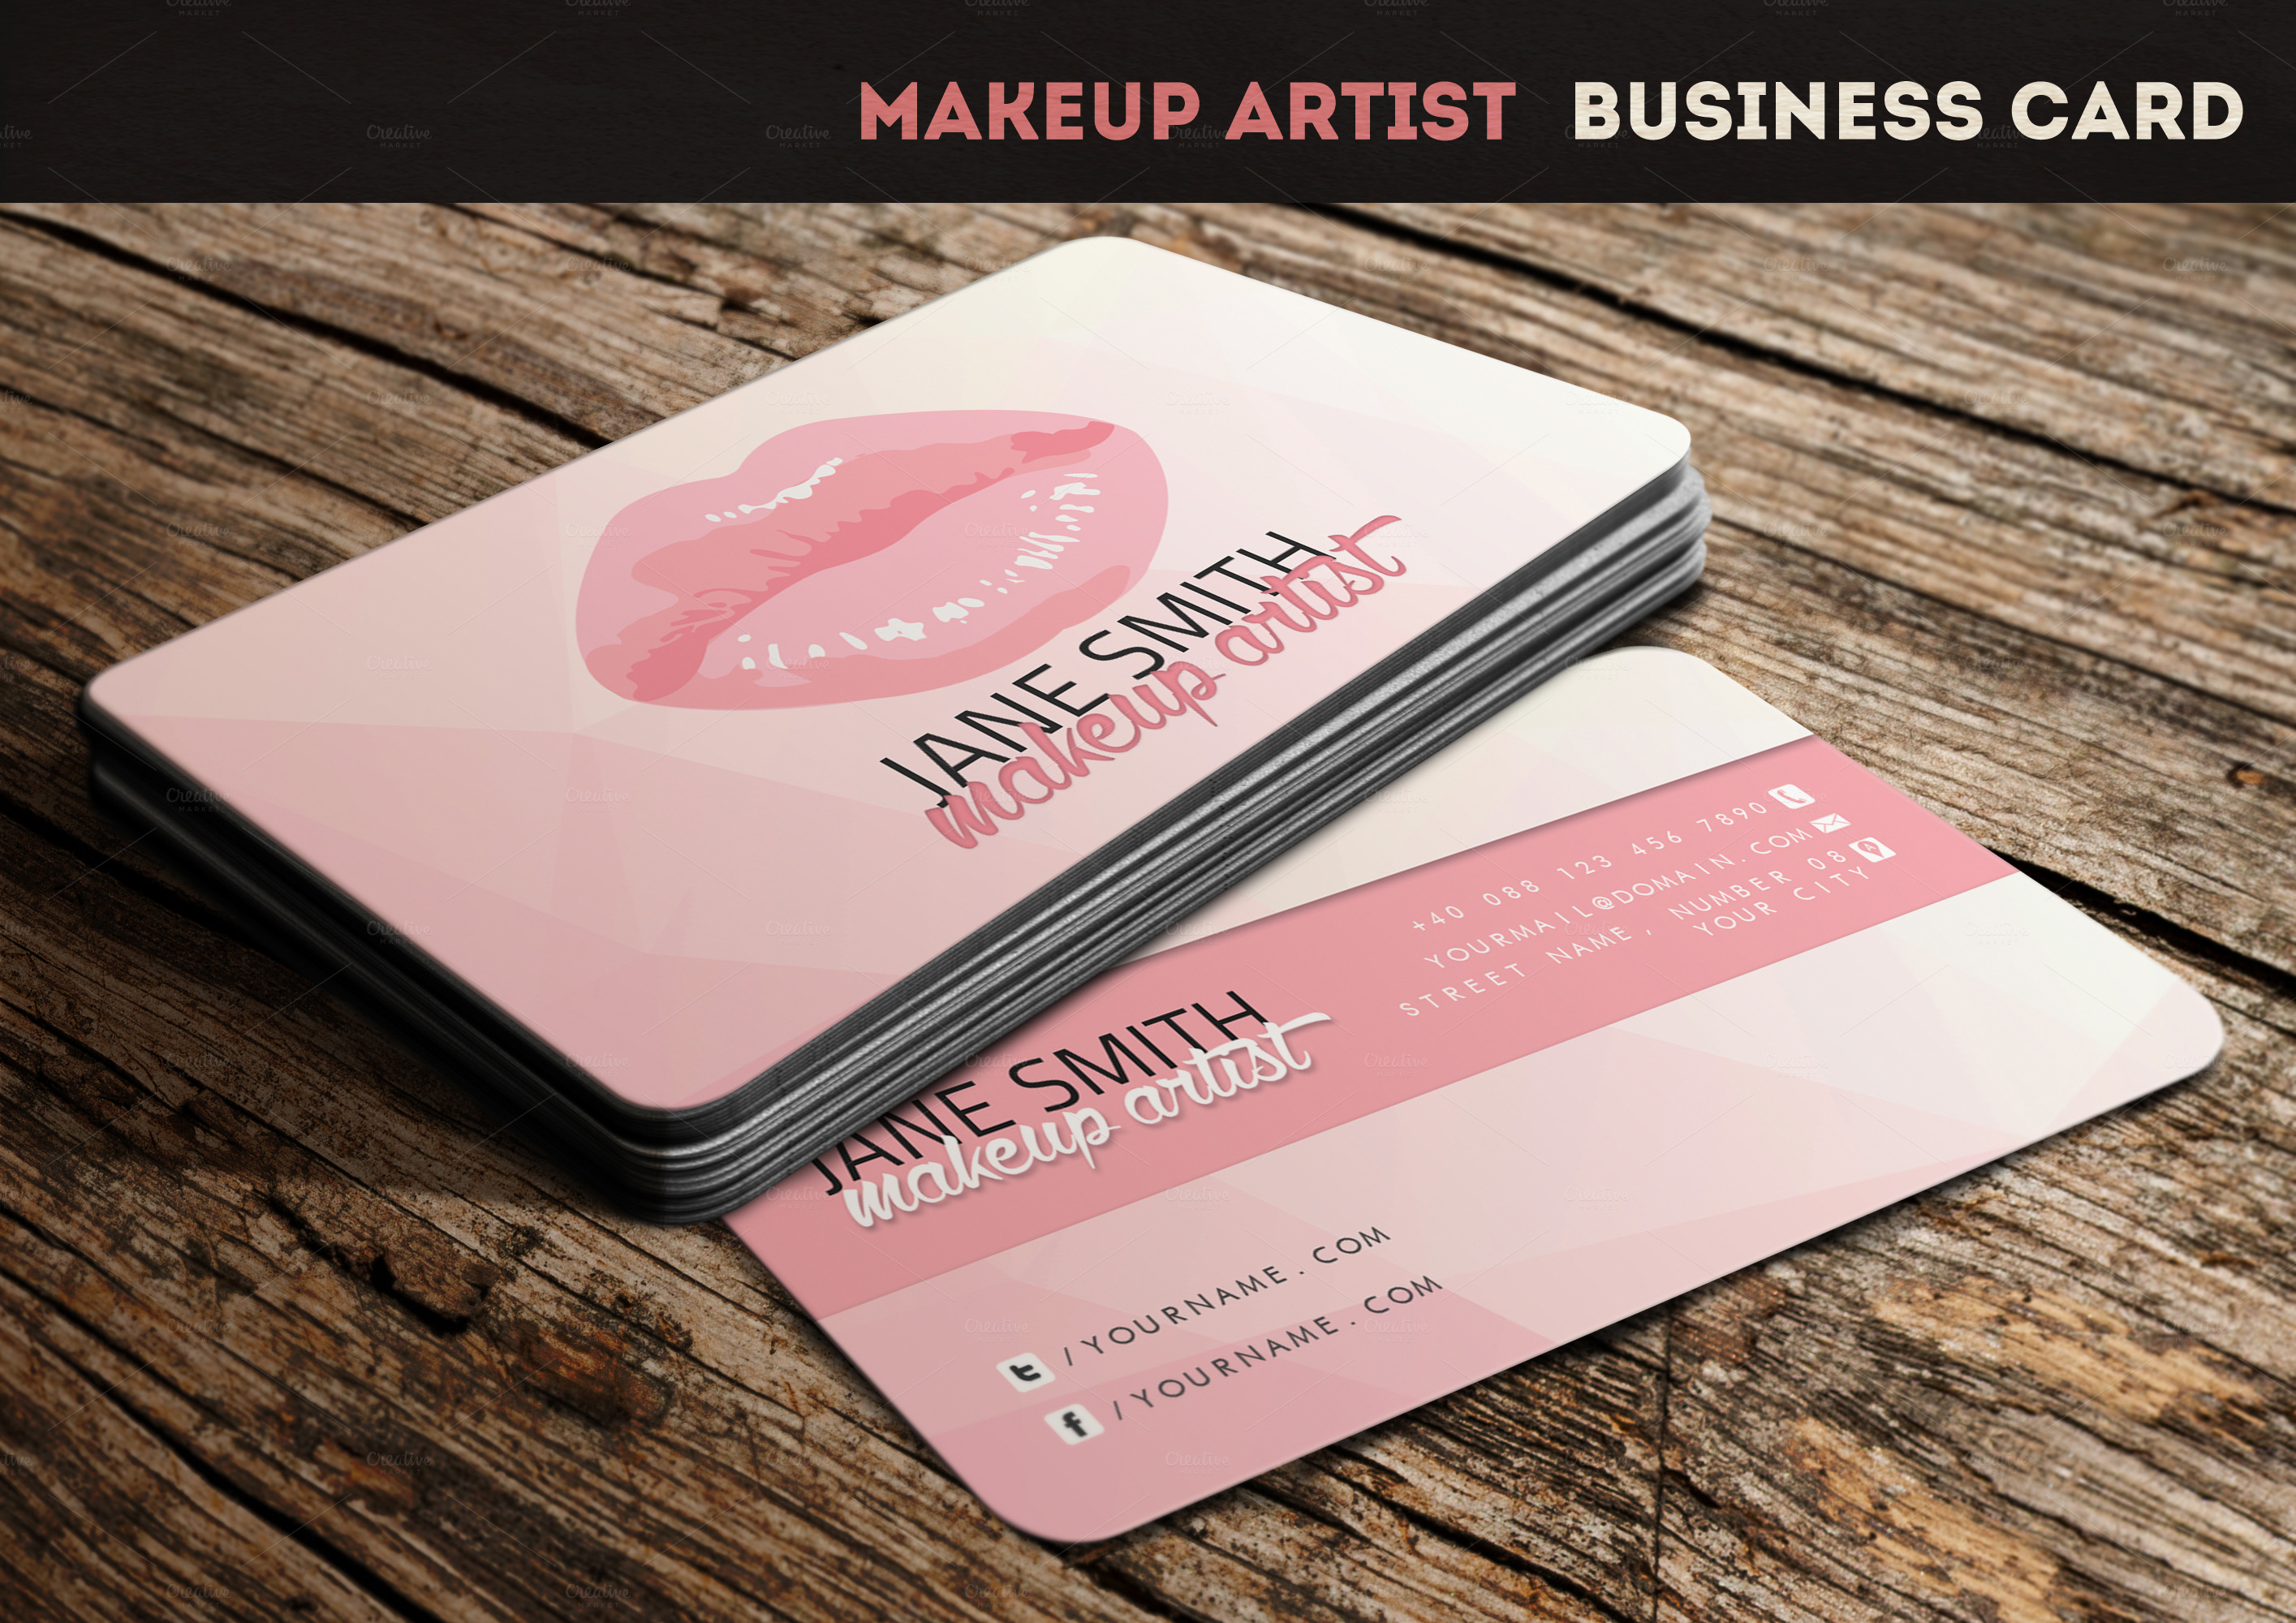 makeup artist business cards - photo #13